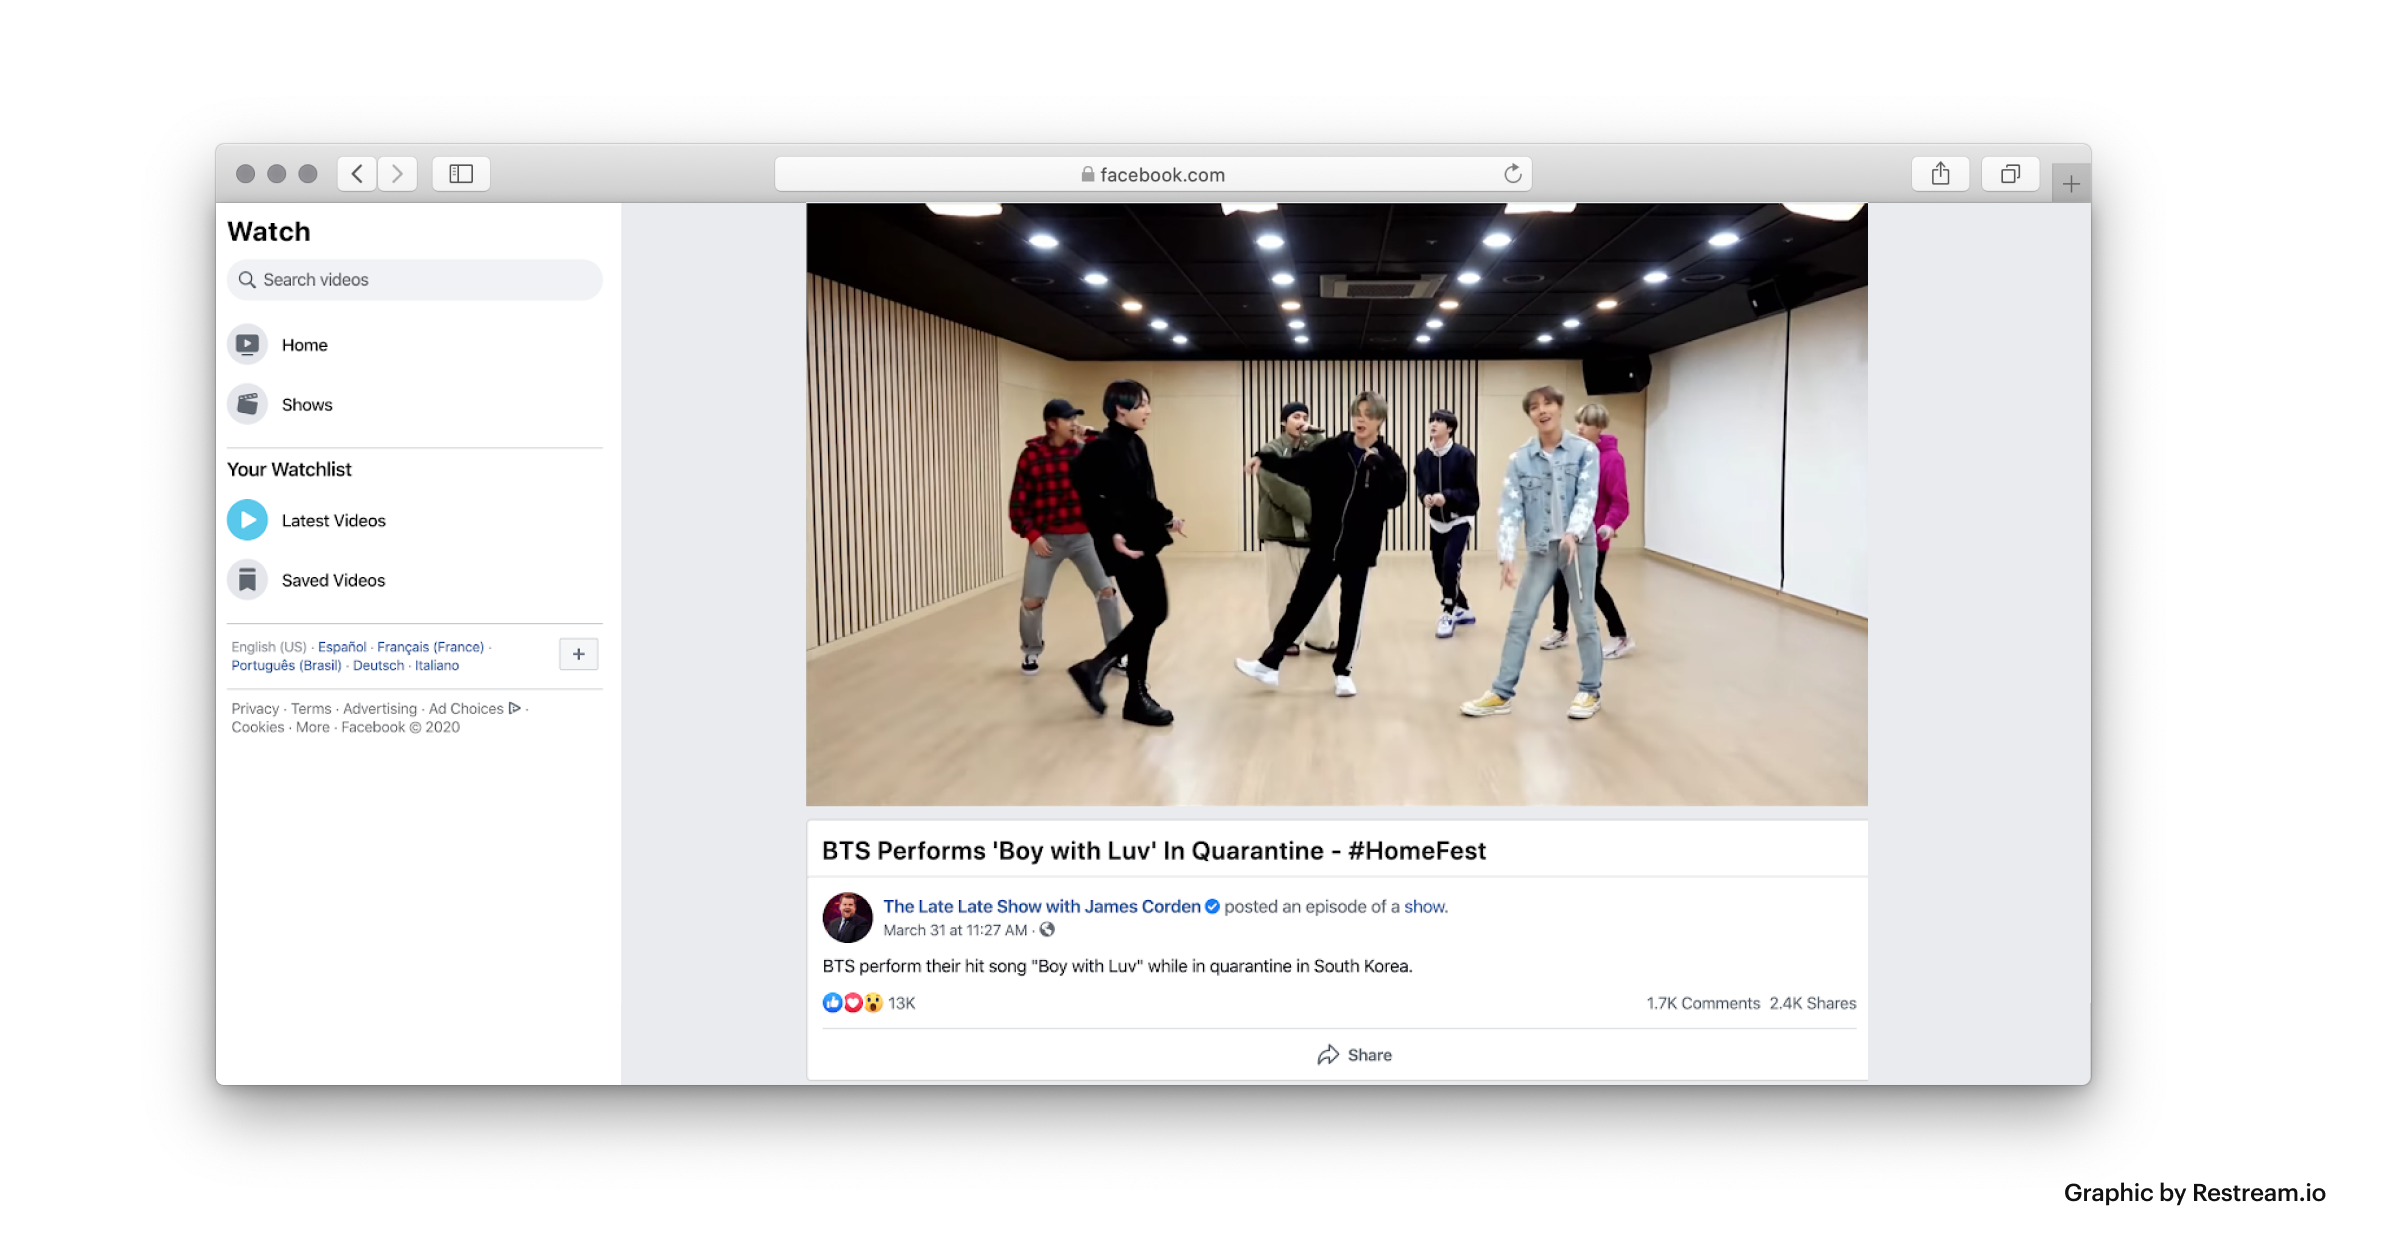 BTS live music performance on Facebook